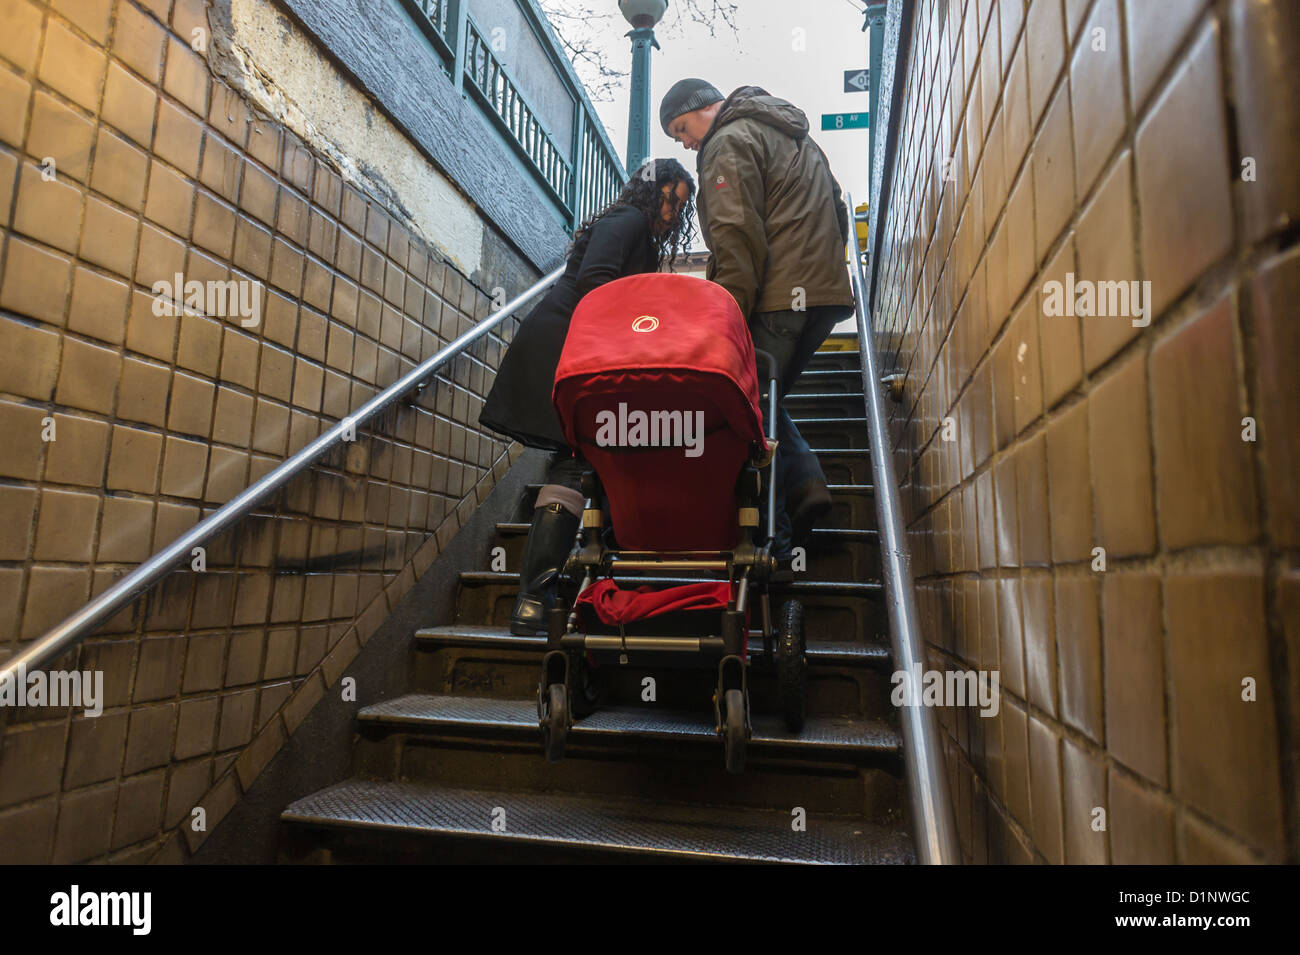 A Couple Carries A Stroller Up The Stairs As They Exit The